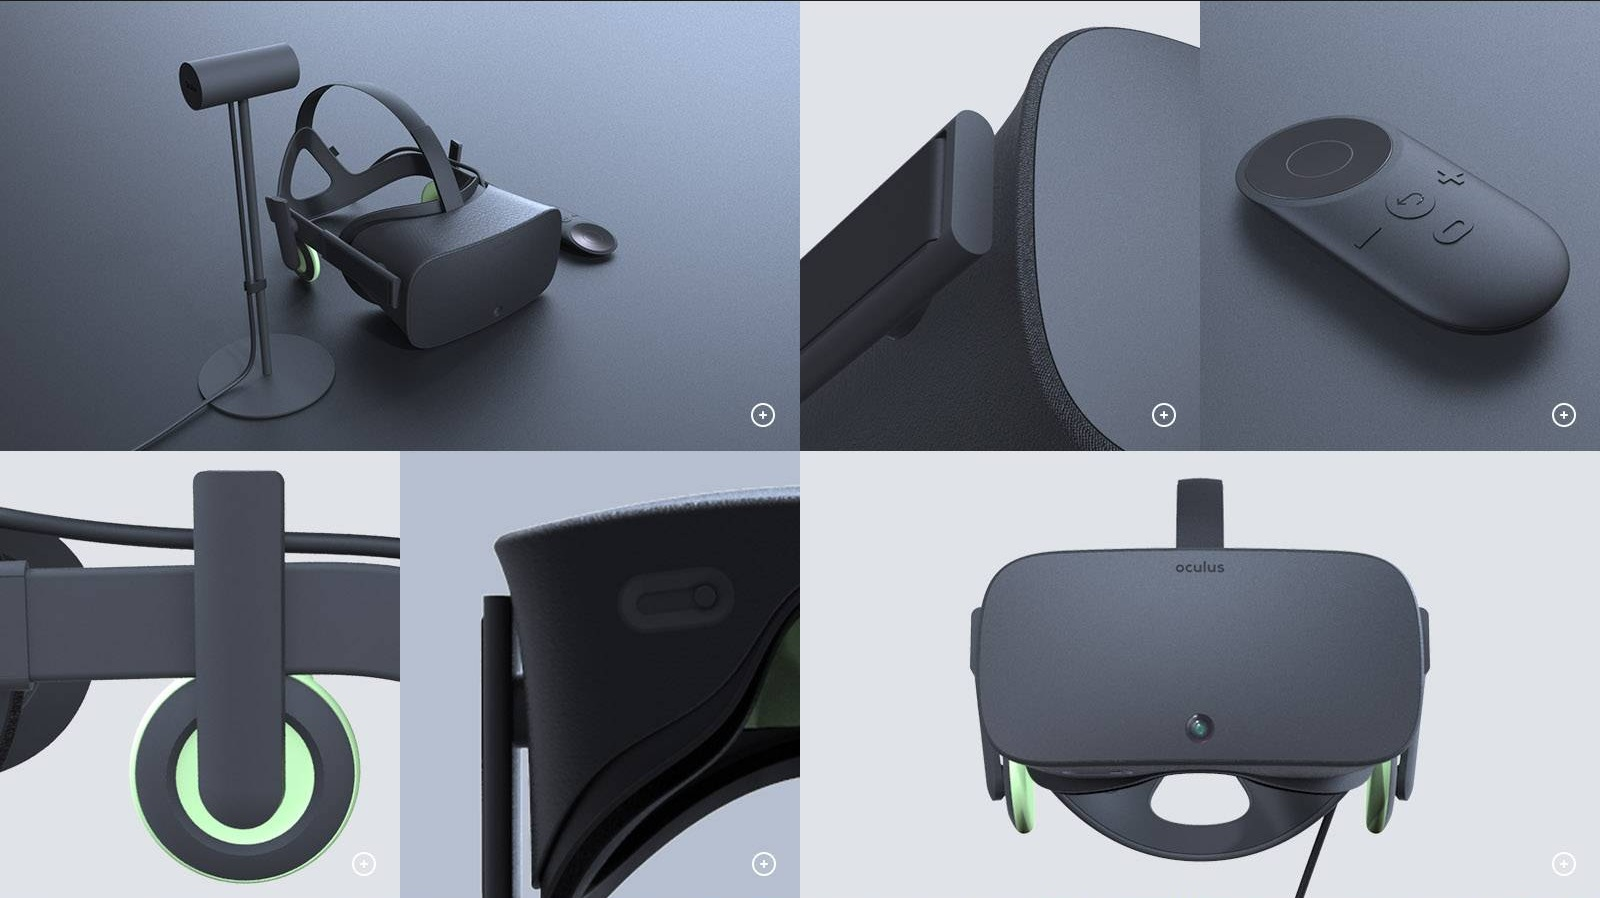 Leaked images could point to Oculus controller, final Rift